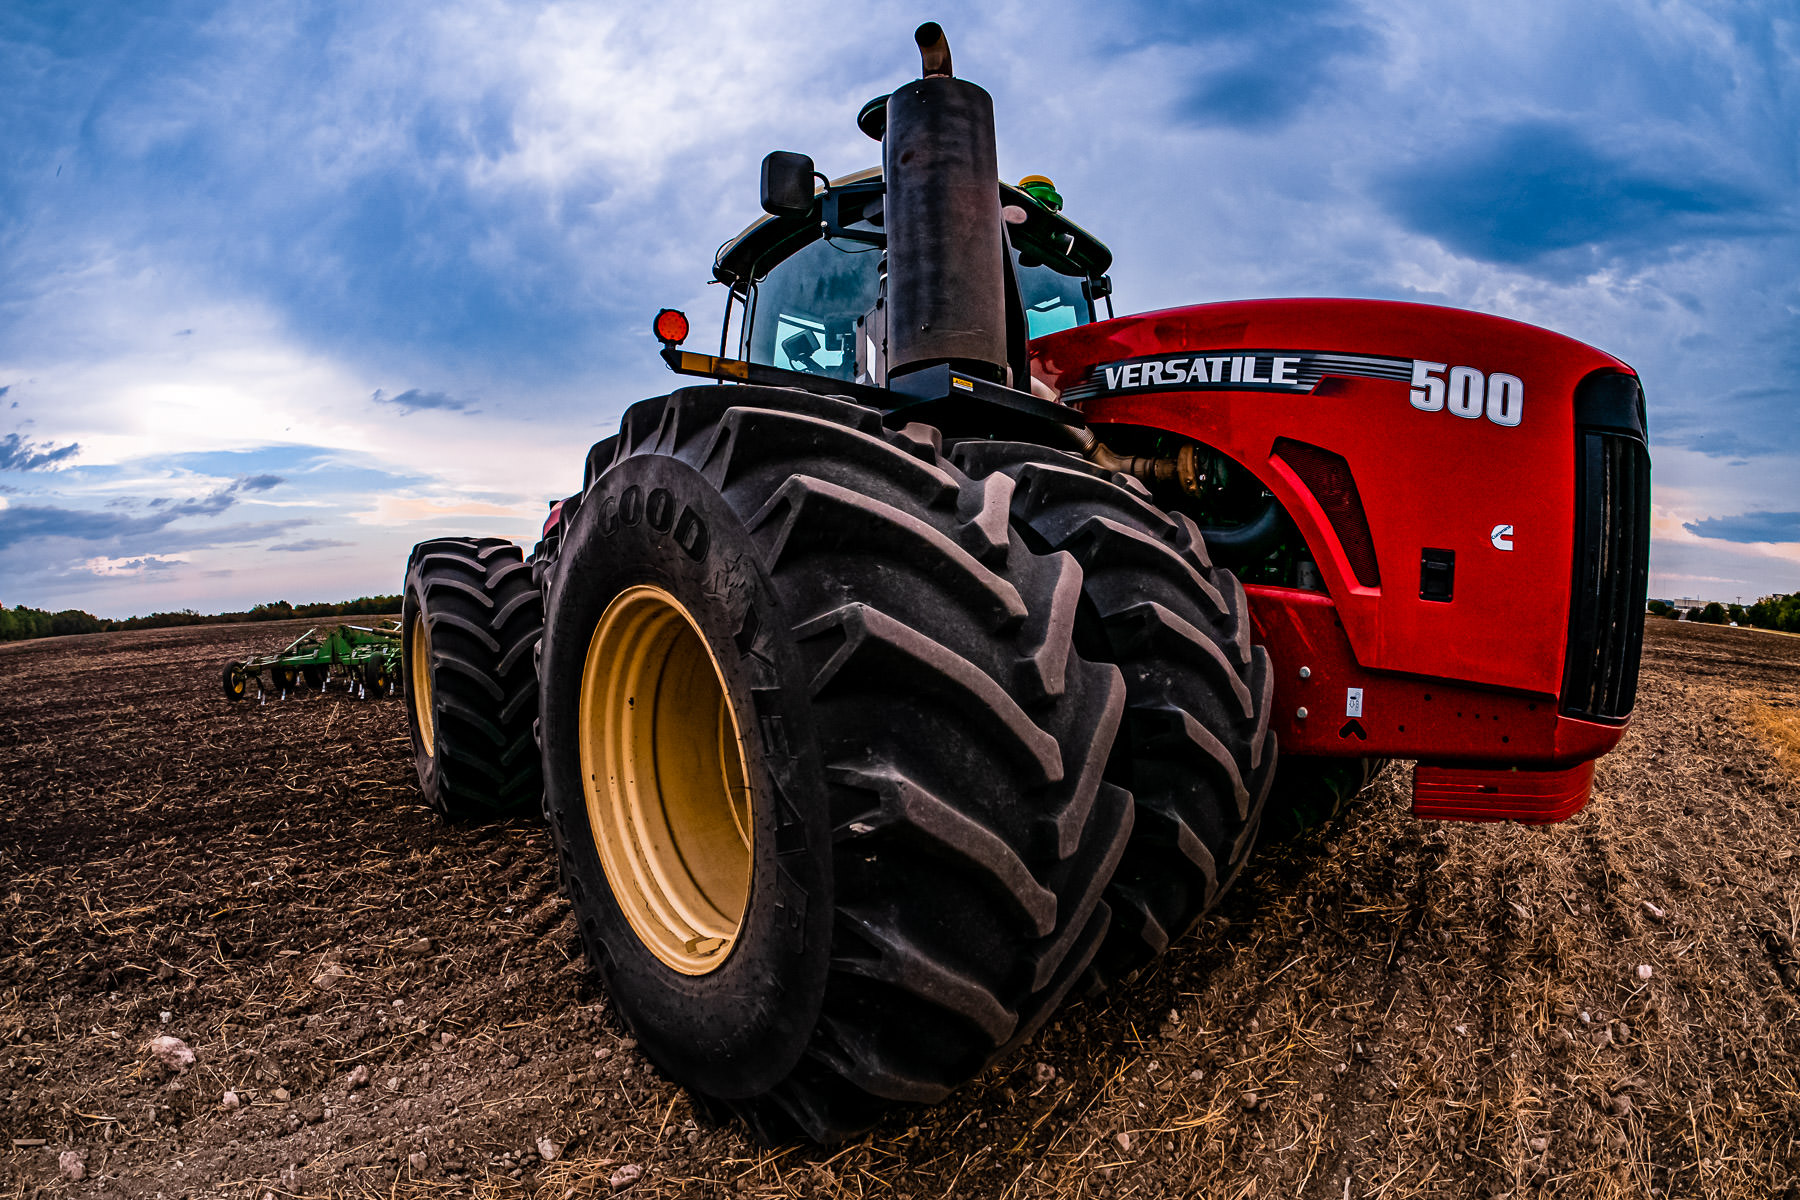 Detail of a Versatile tractor on a farm near McKinney, Texas.